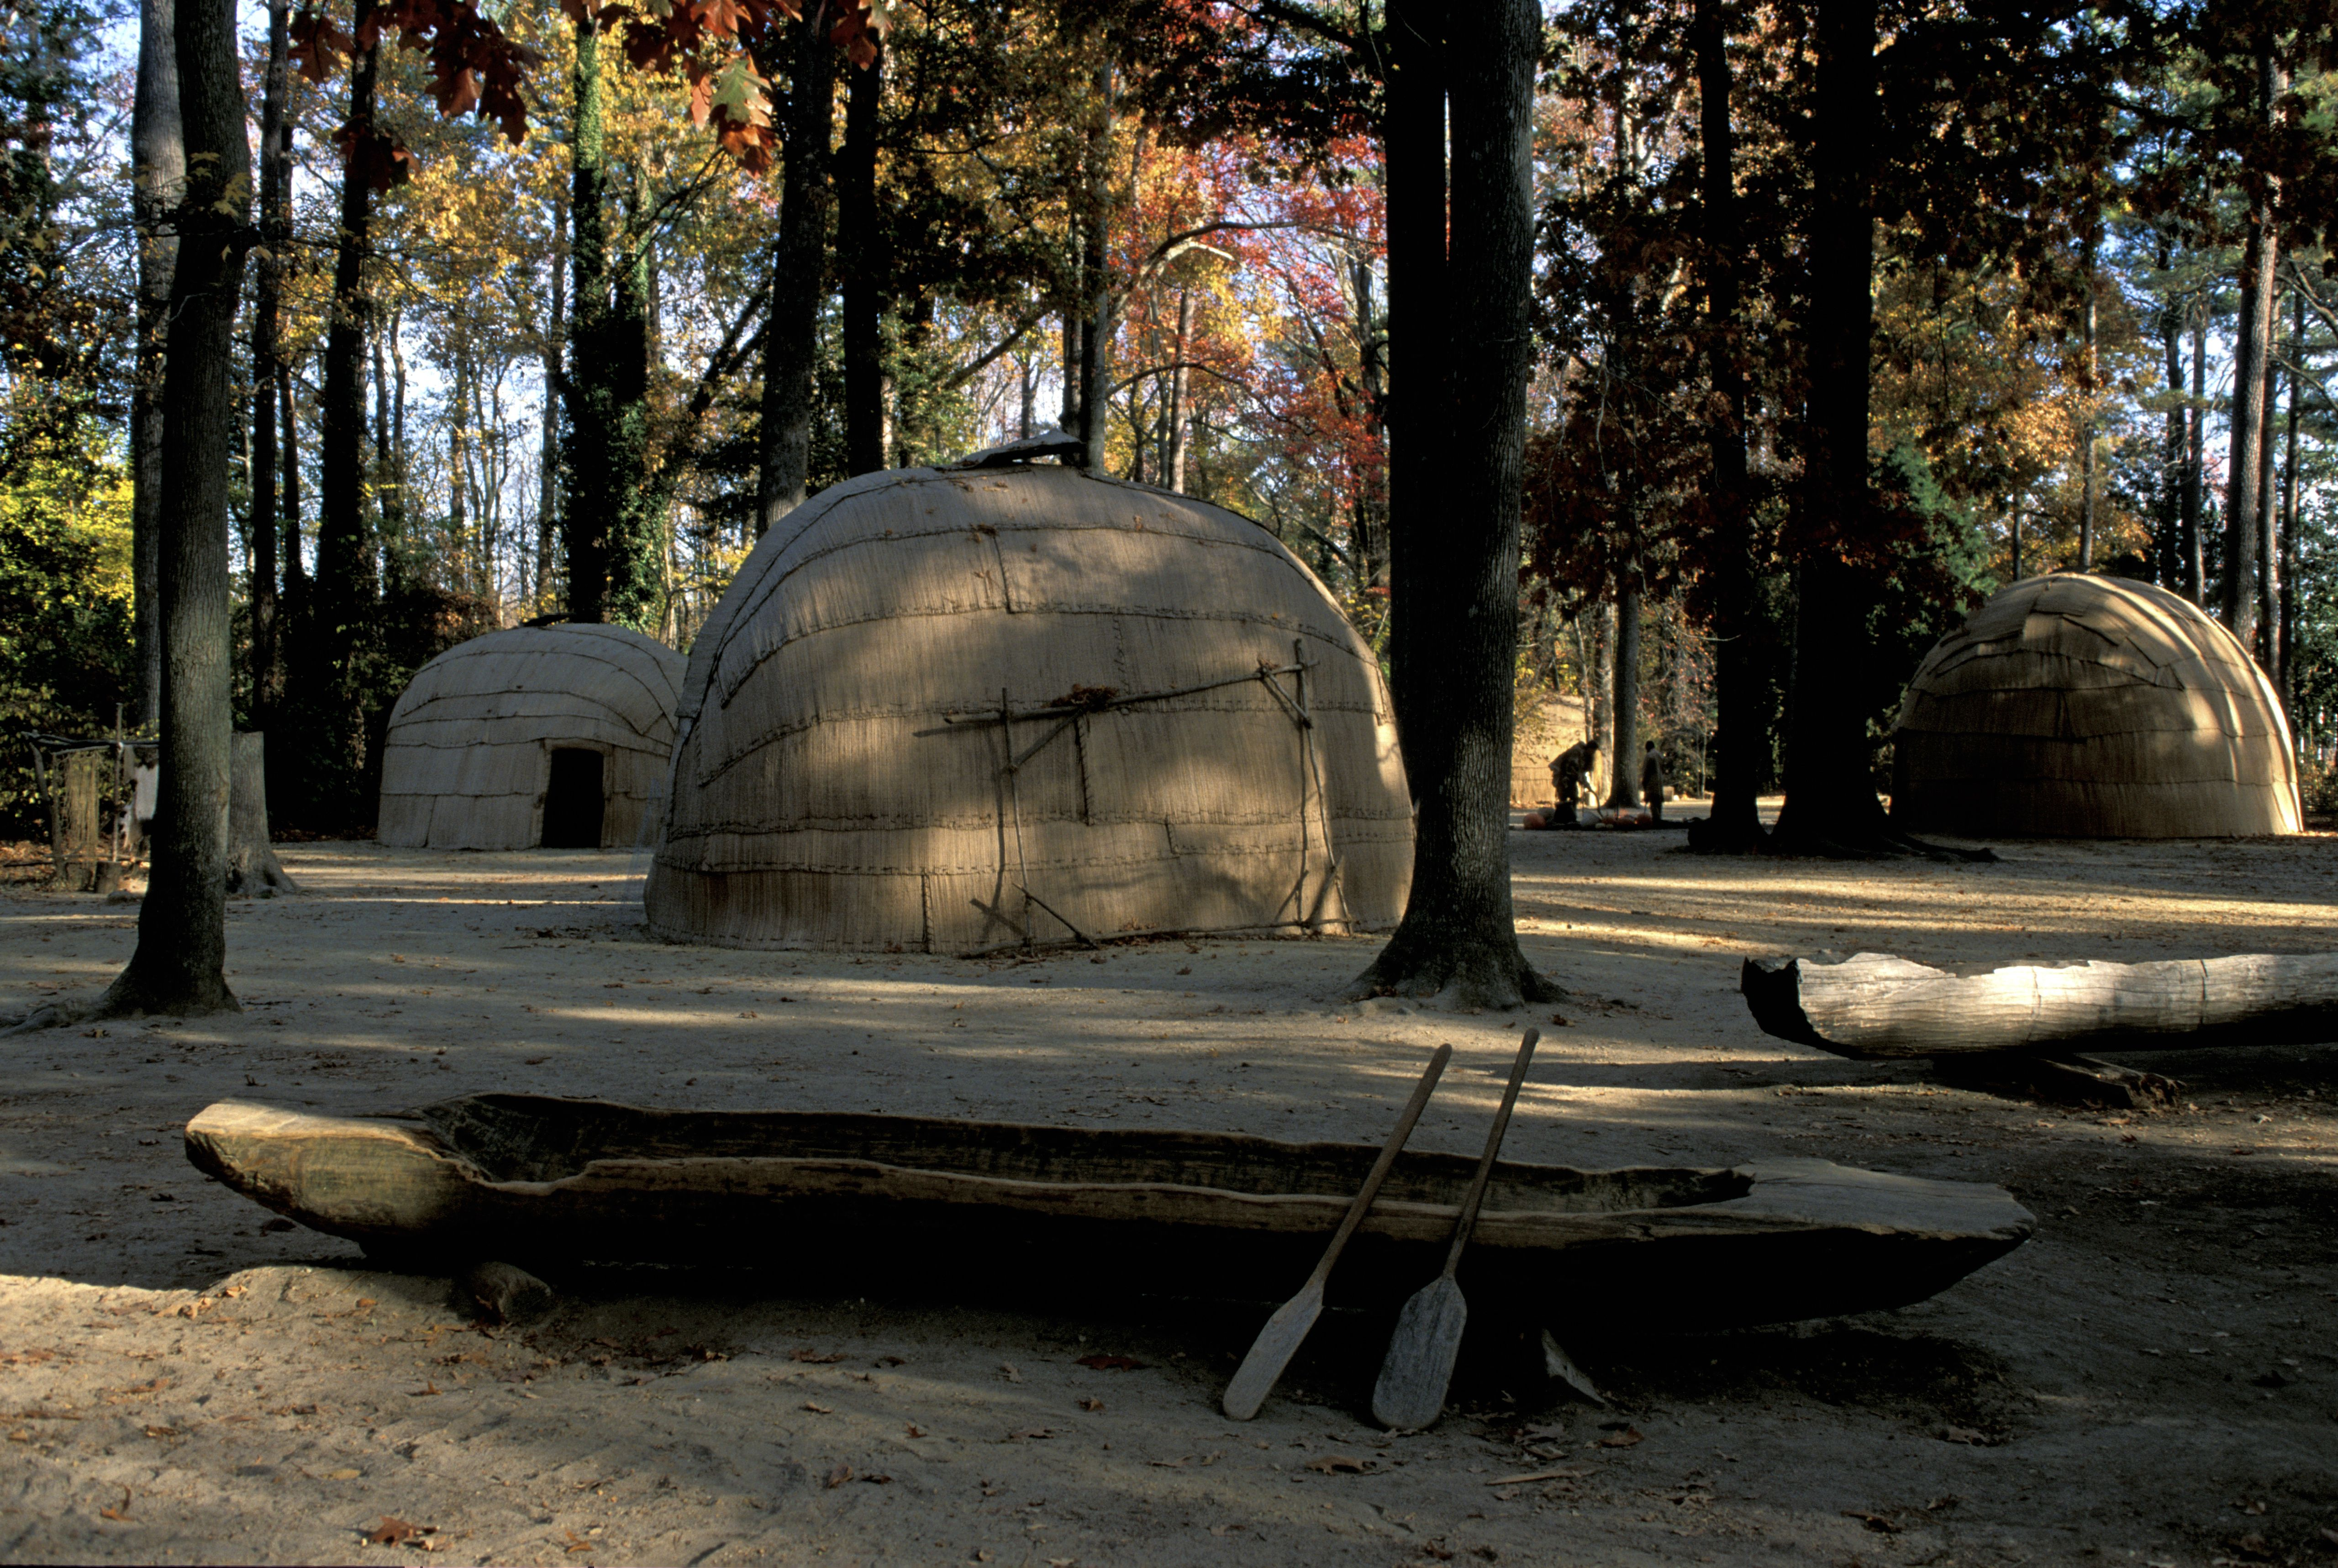 powhatan Village and Dugout Canoes